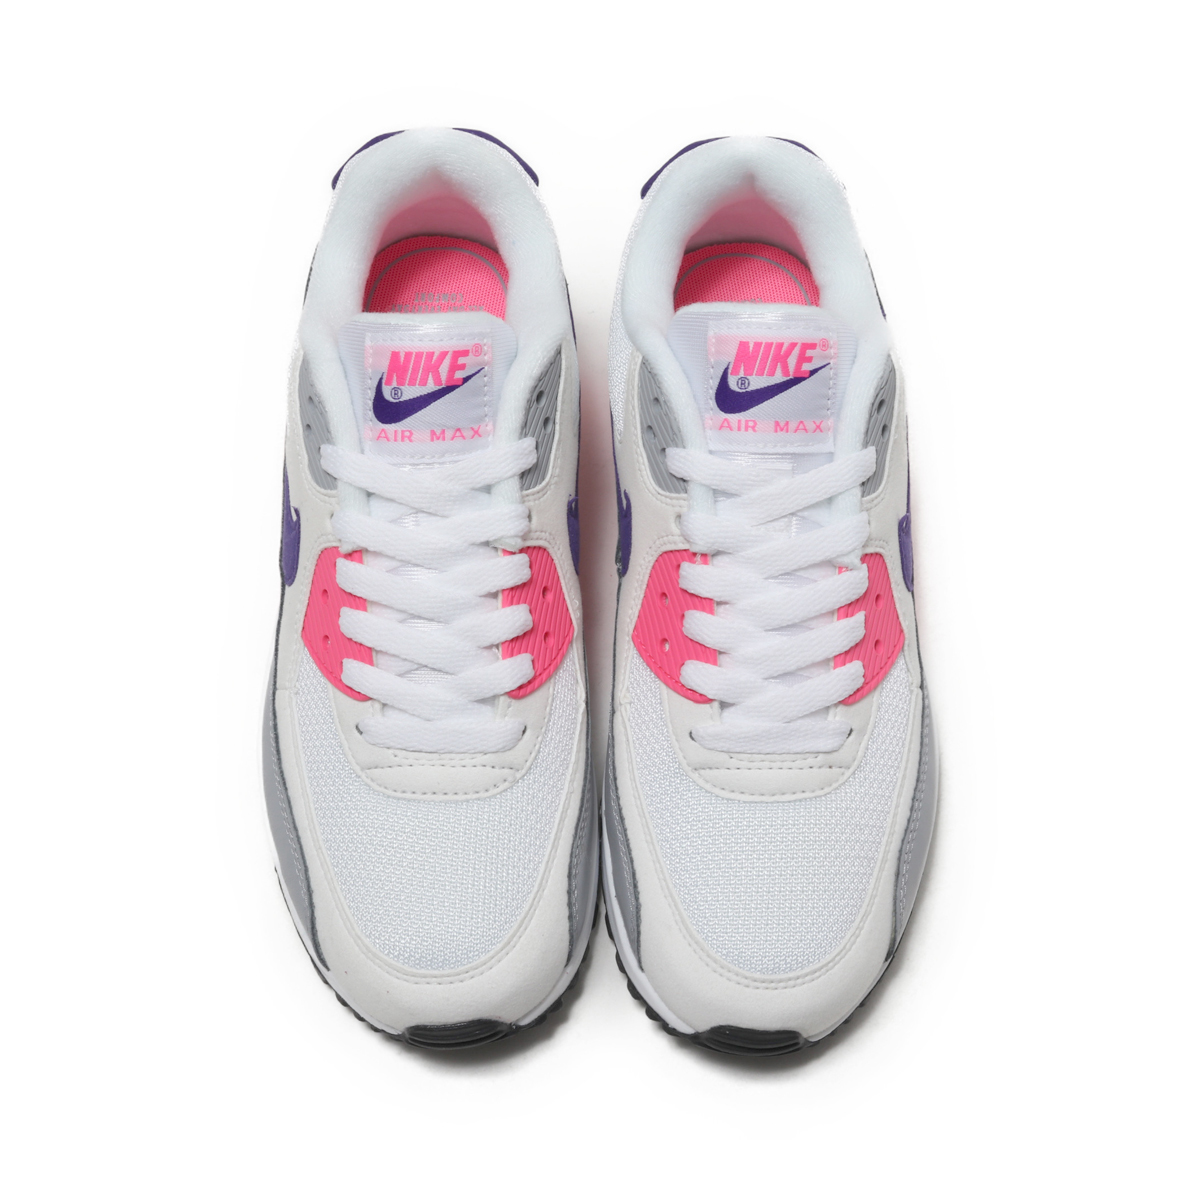 90e6c004ef9 NIKE WMNS AIR MAX 90 (Nike women Air Max 90) WHITE COURT PURPLE-WOLF GREY-LASER  PINK 18FA-I